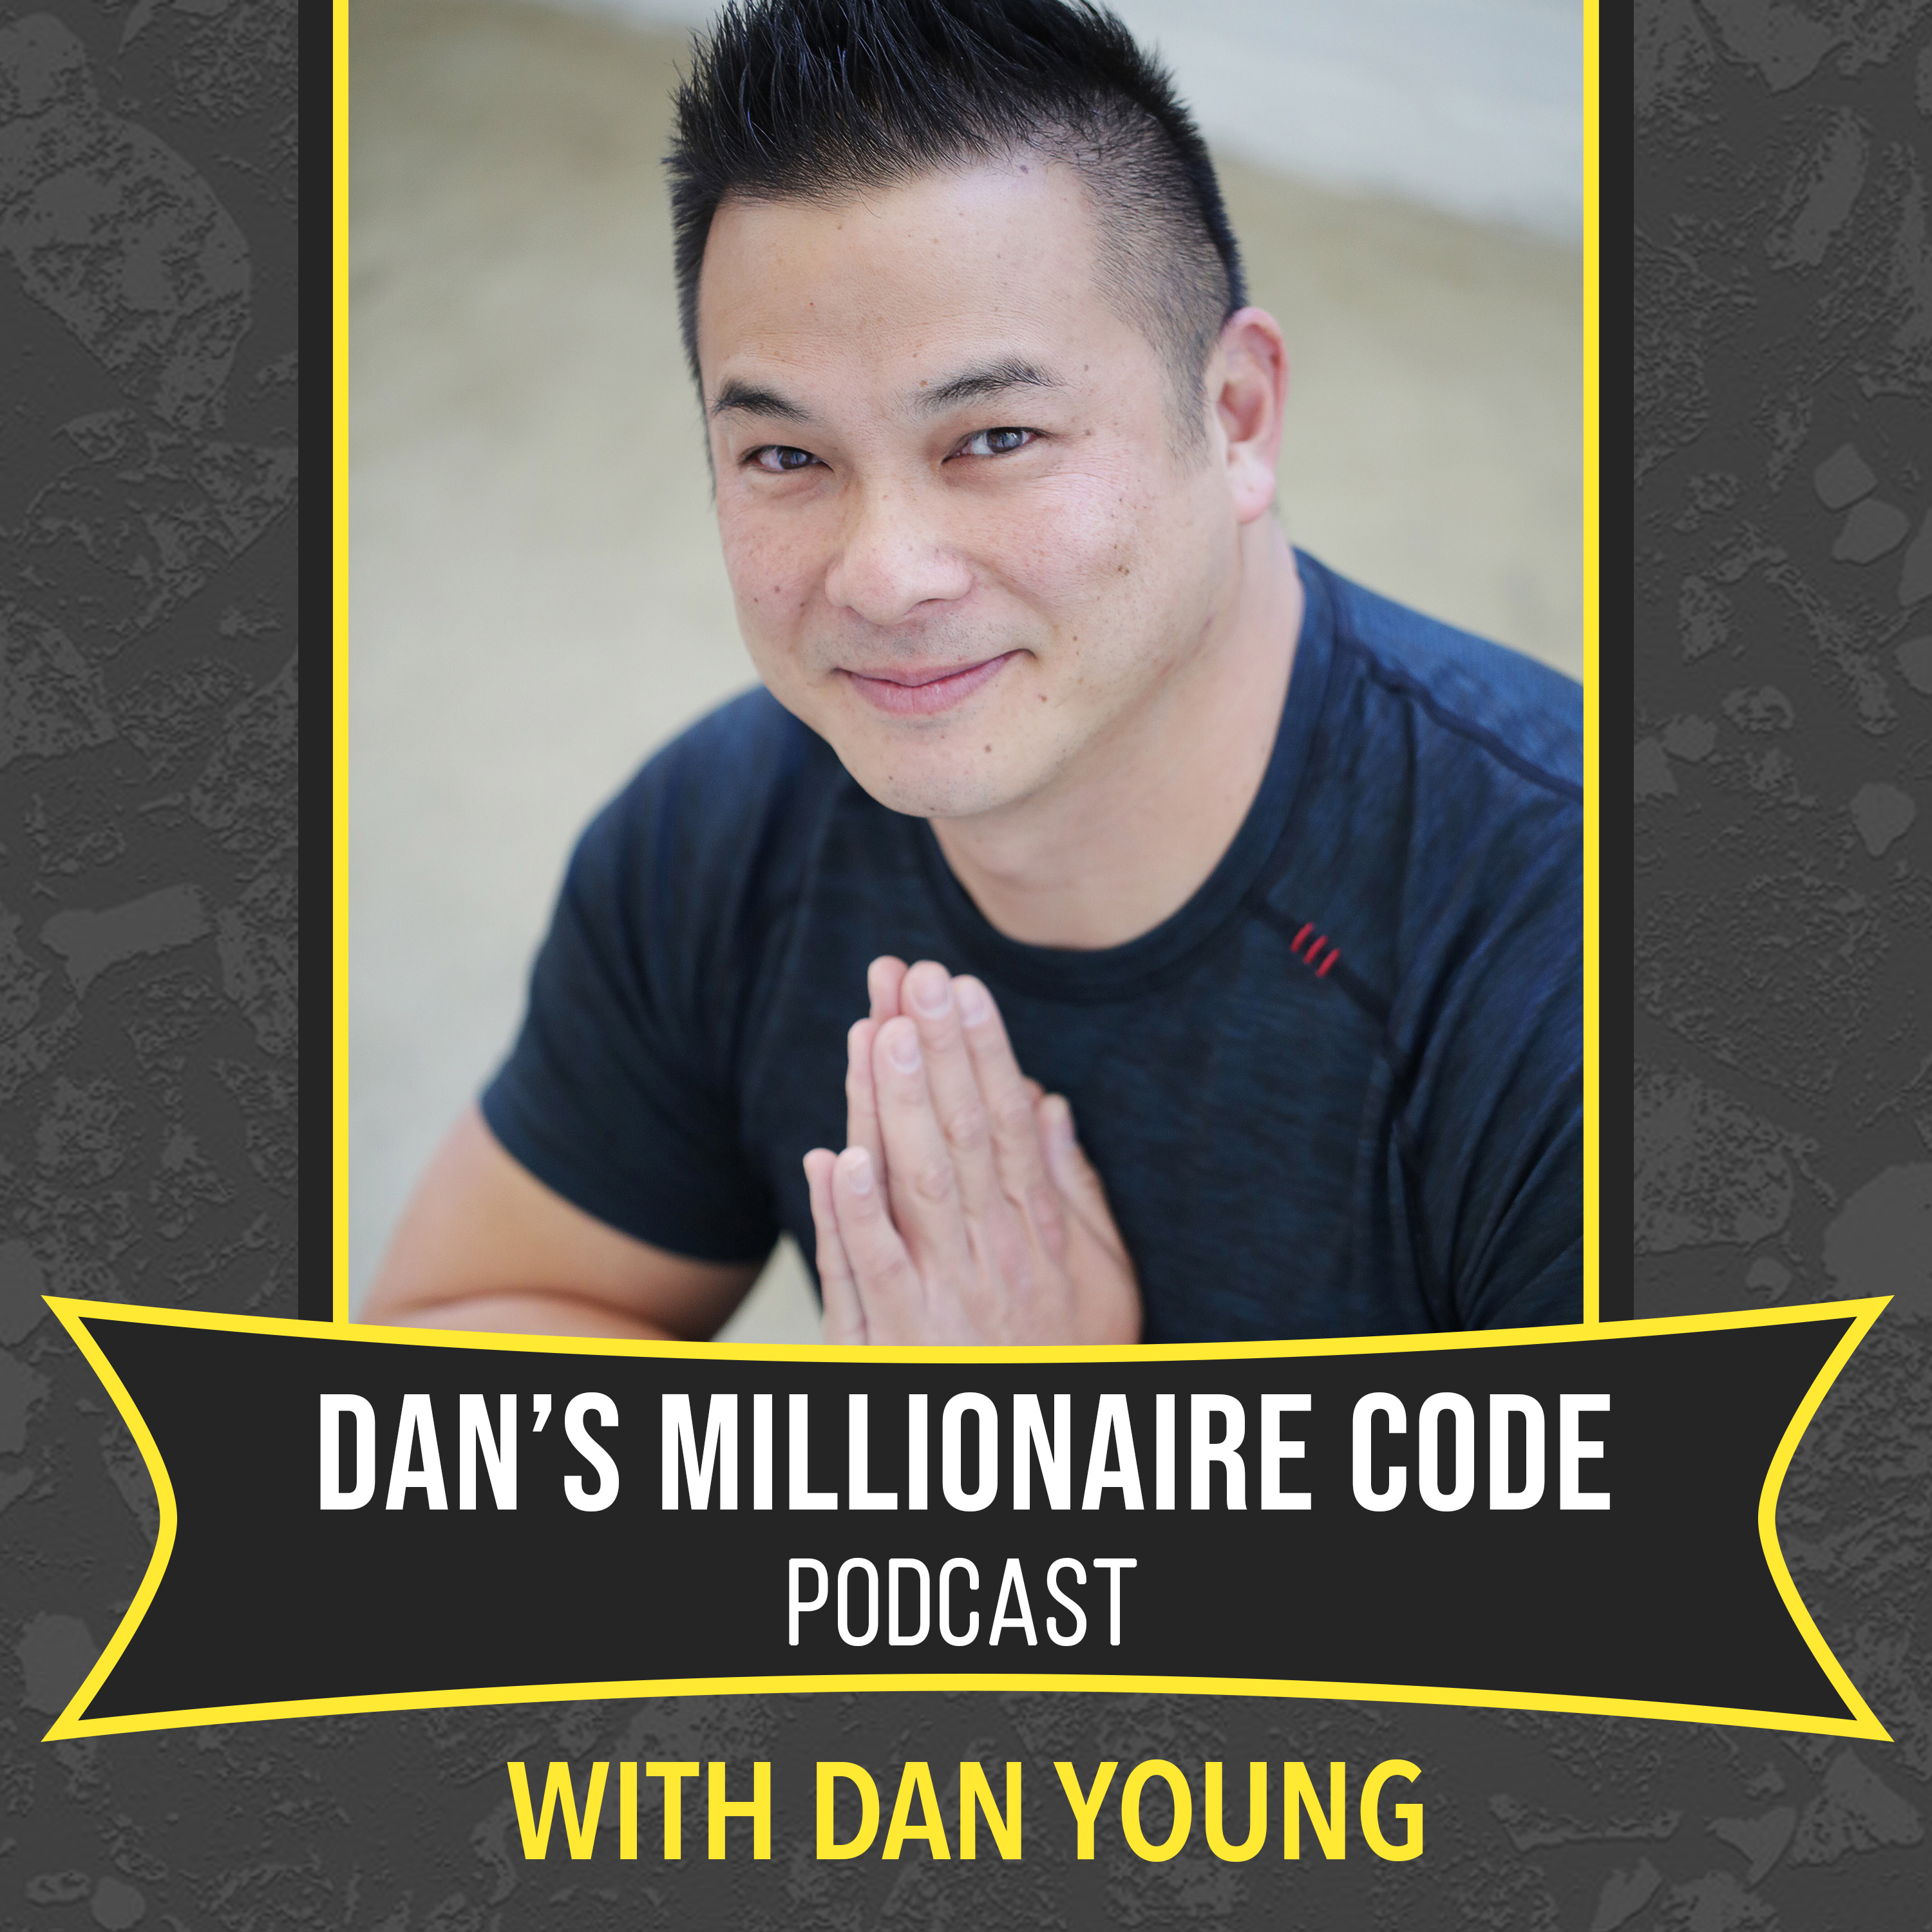 Dan's Millionaire Code: The Podcast Episode 72 with Voice Over Pete